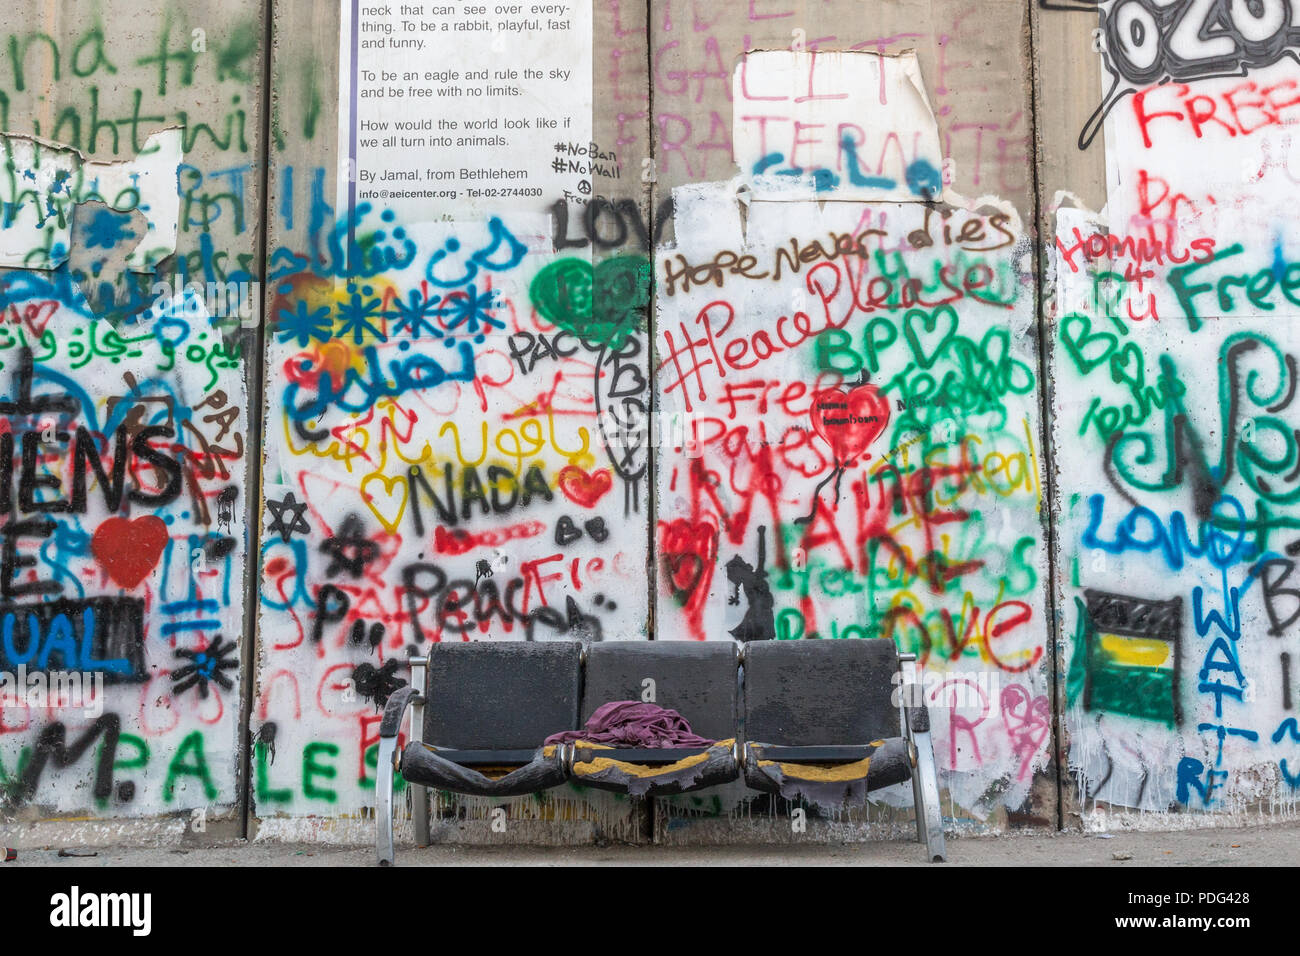 Graffiti on the Separation barrier  / Peace wall in  Bethleham, Israel, Palestine, Middle East. October 2017 - Stock Image